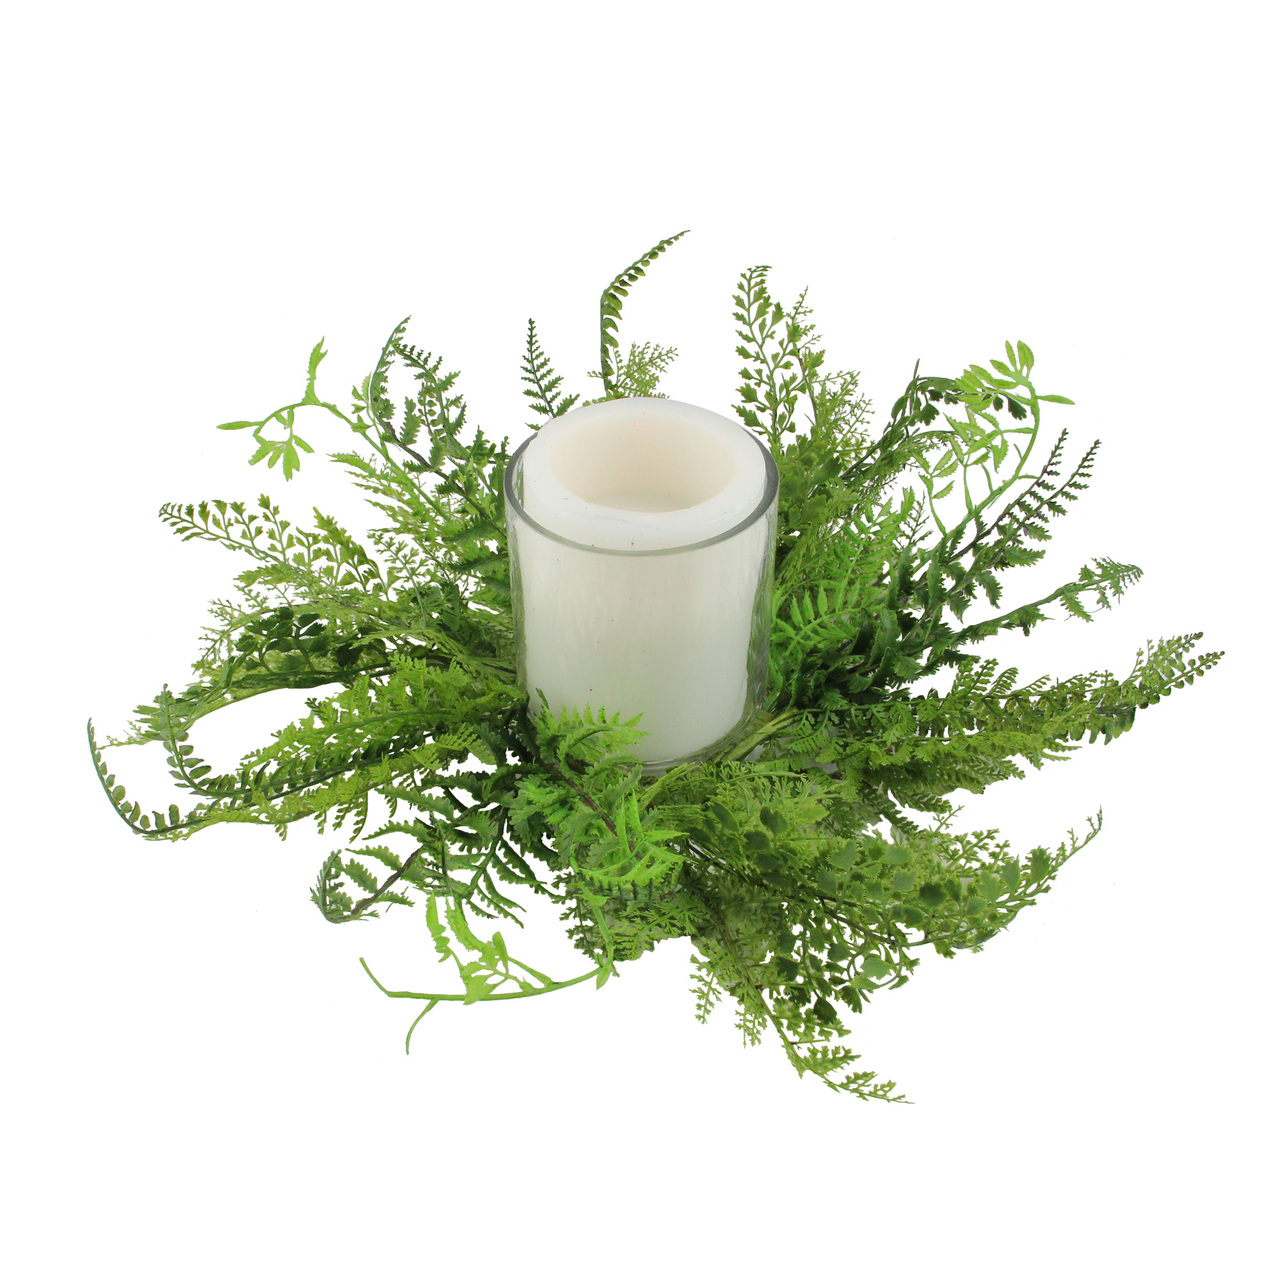 17 Decorative Artificial Mixed Green Fern Hurricane Glass Candle Holder Christmas Central